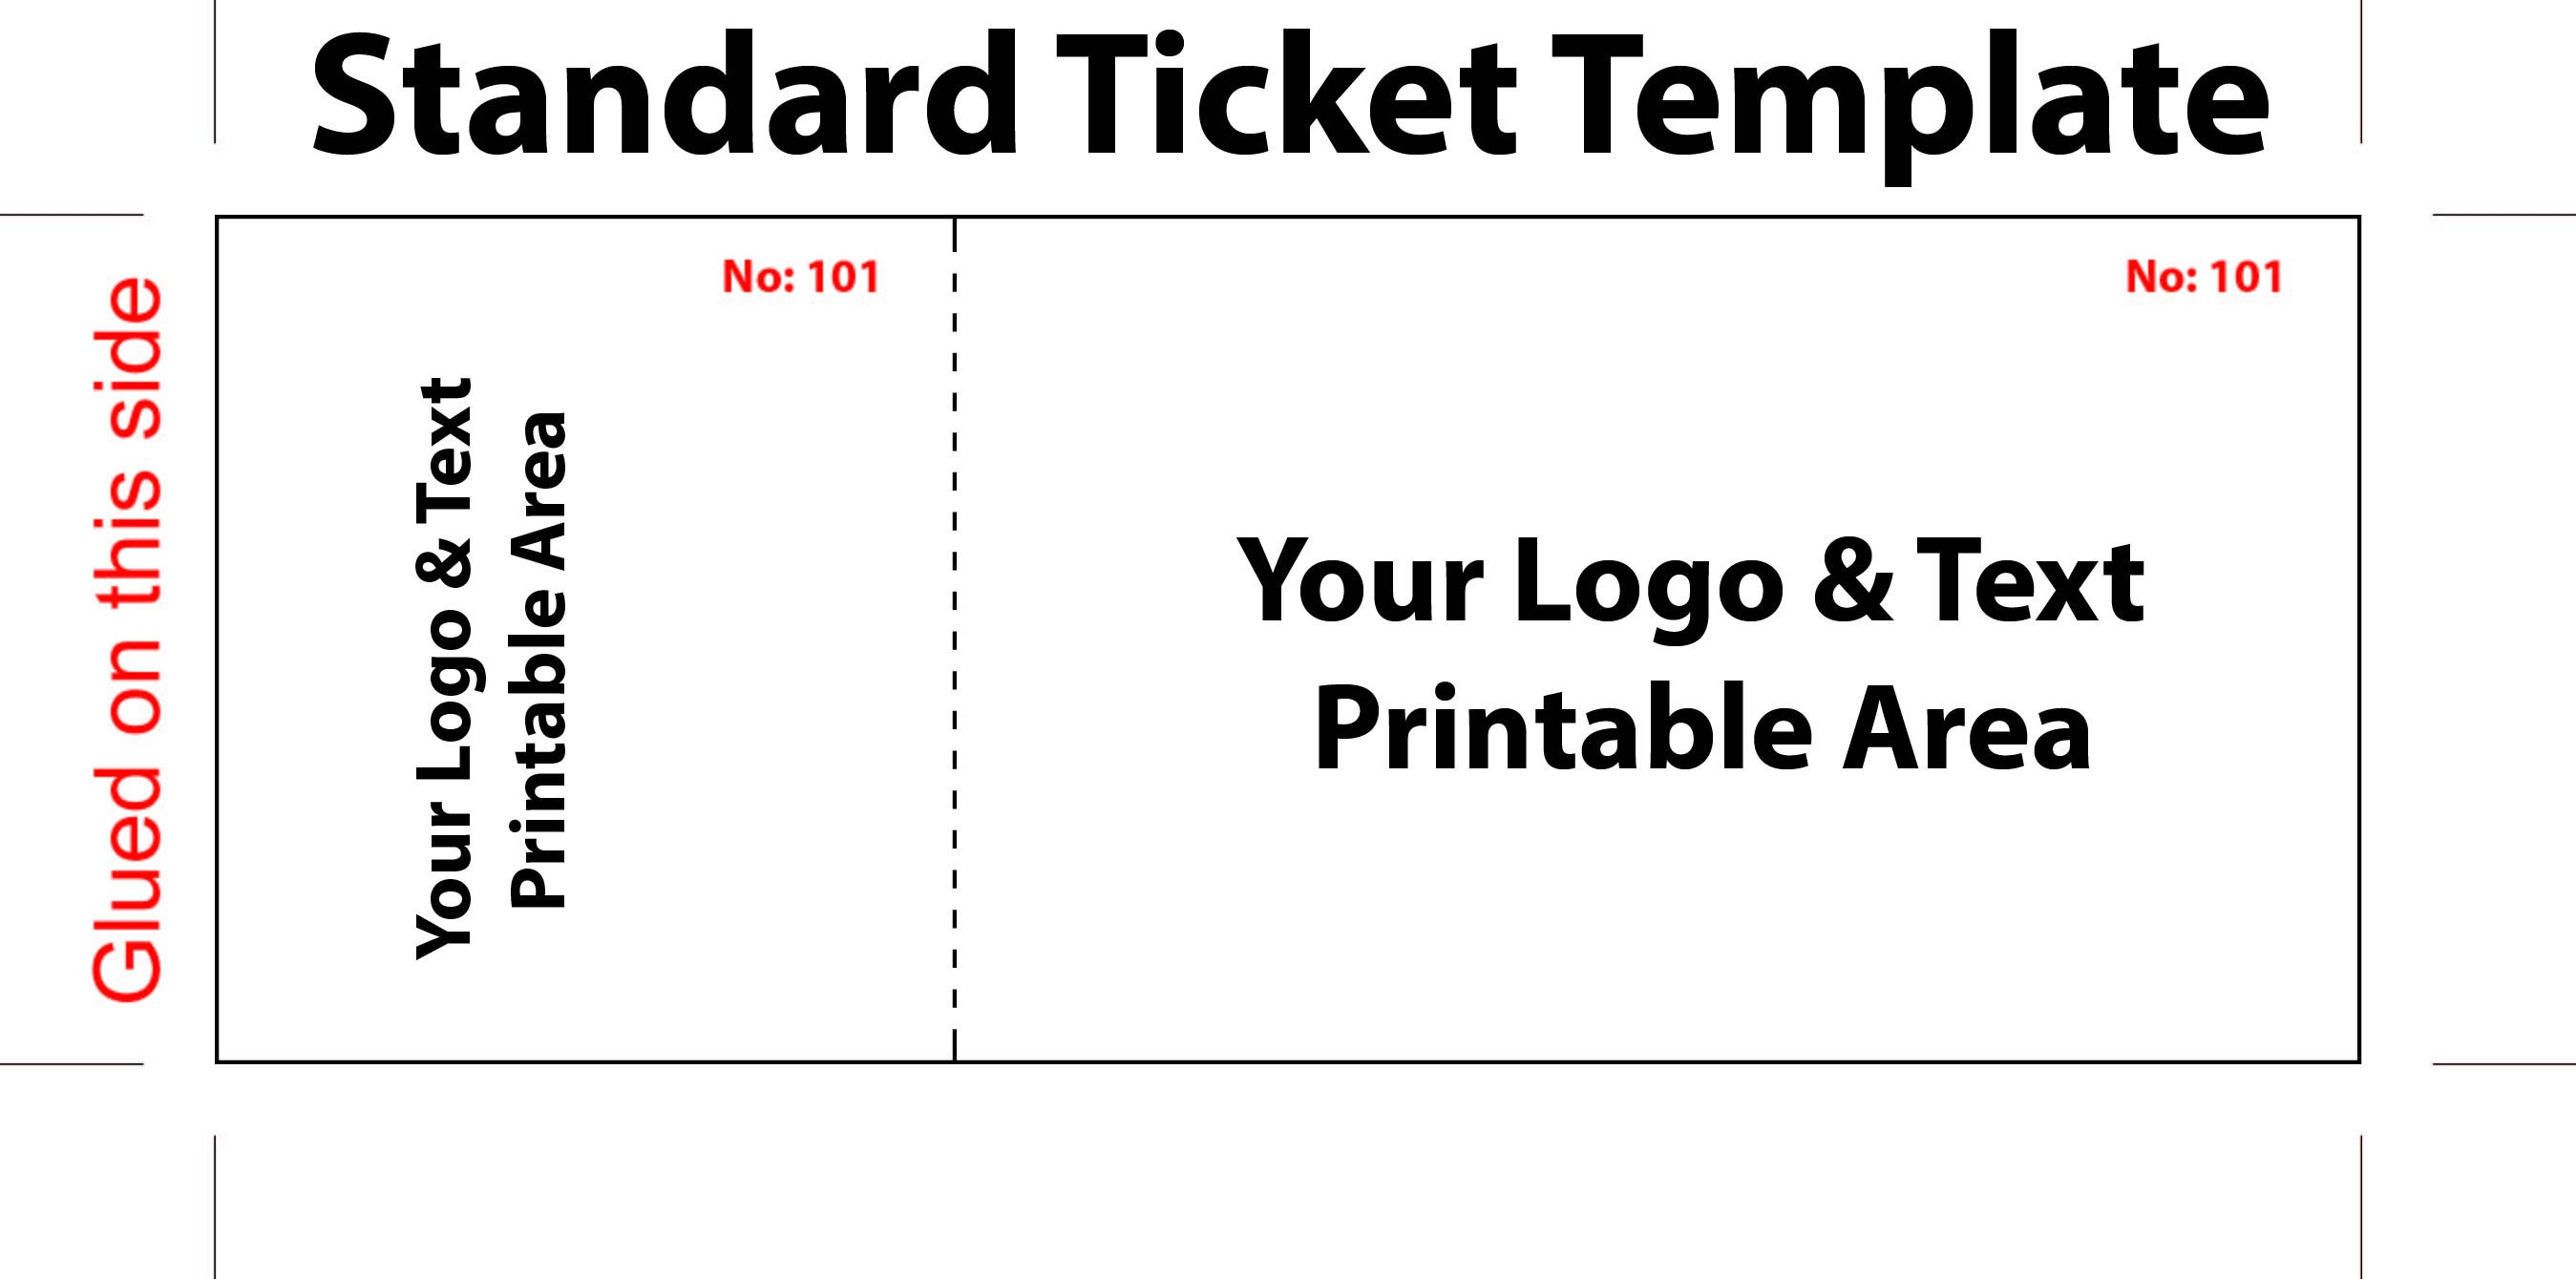 Concert Ticket Template Free Printable Free Editable Standard Ticket Template Example for Concert